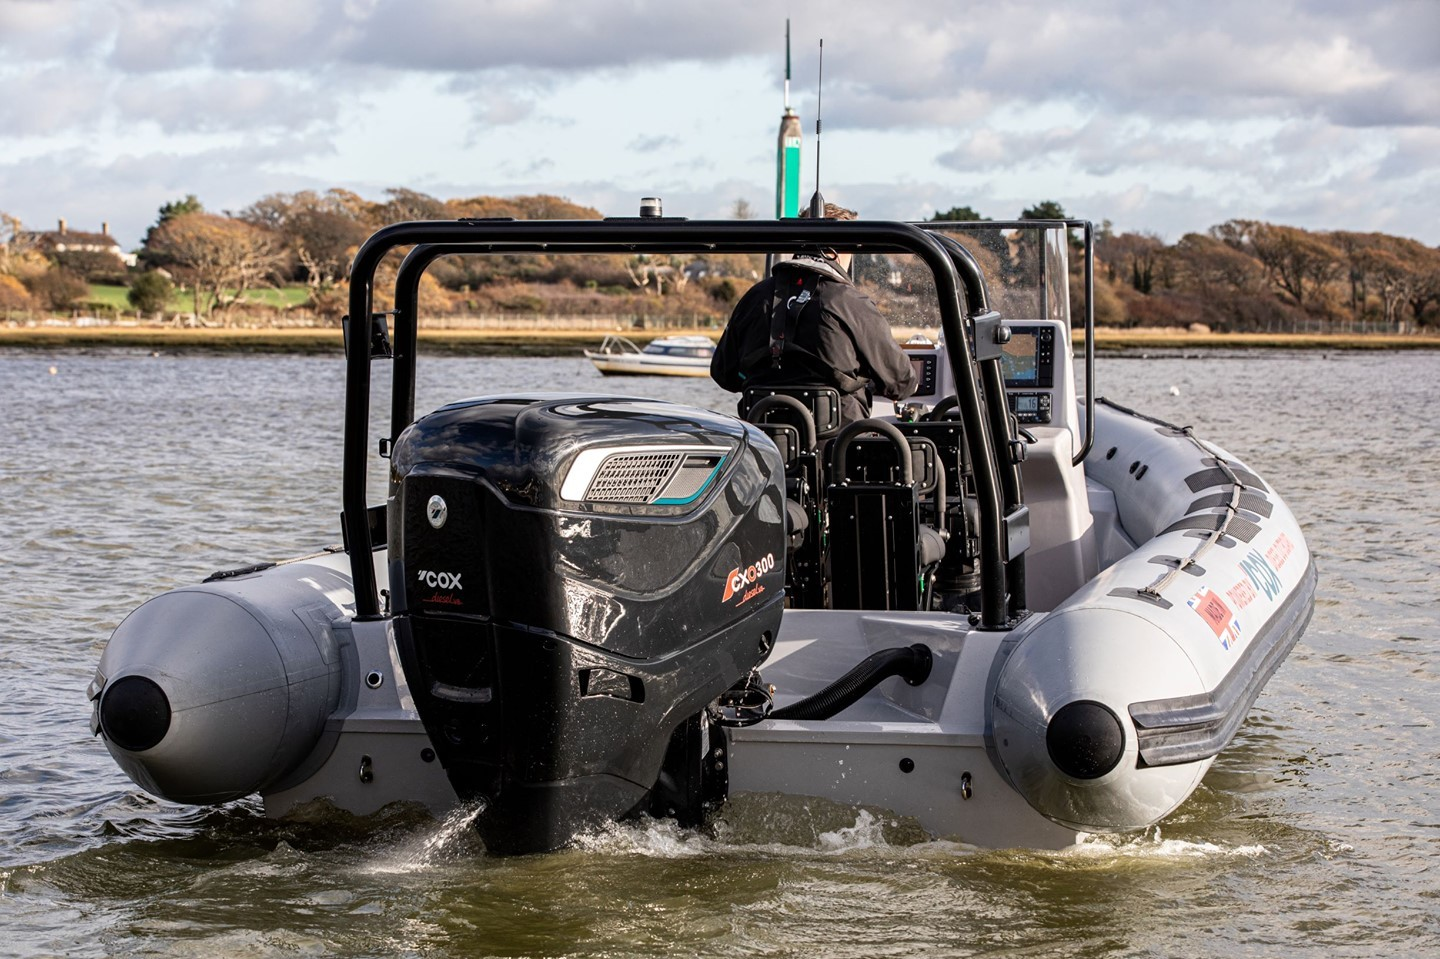 Happy New Year! We hope you all enjoyed the festive break. We're looking forward to what 2021 will bring but in the meantime, find out what our UK distributor, Berthon Power Ltd predict for the future of marine.   Link in bio   #CXO300 #CoxPowertrain #DieselPower #DieselOutboard #Diesel